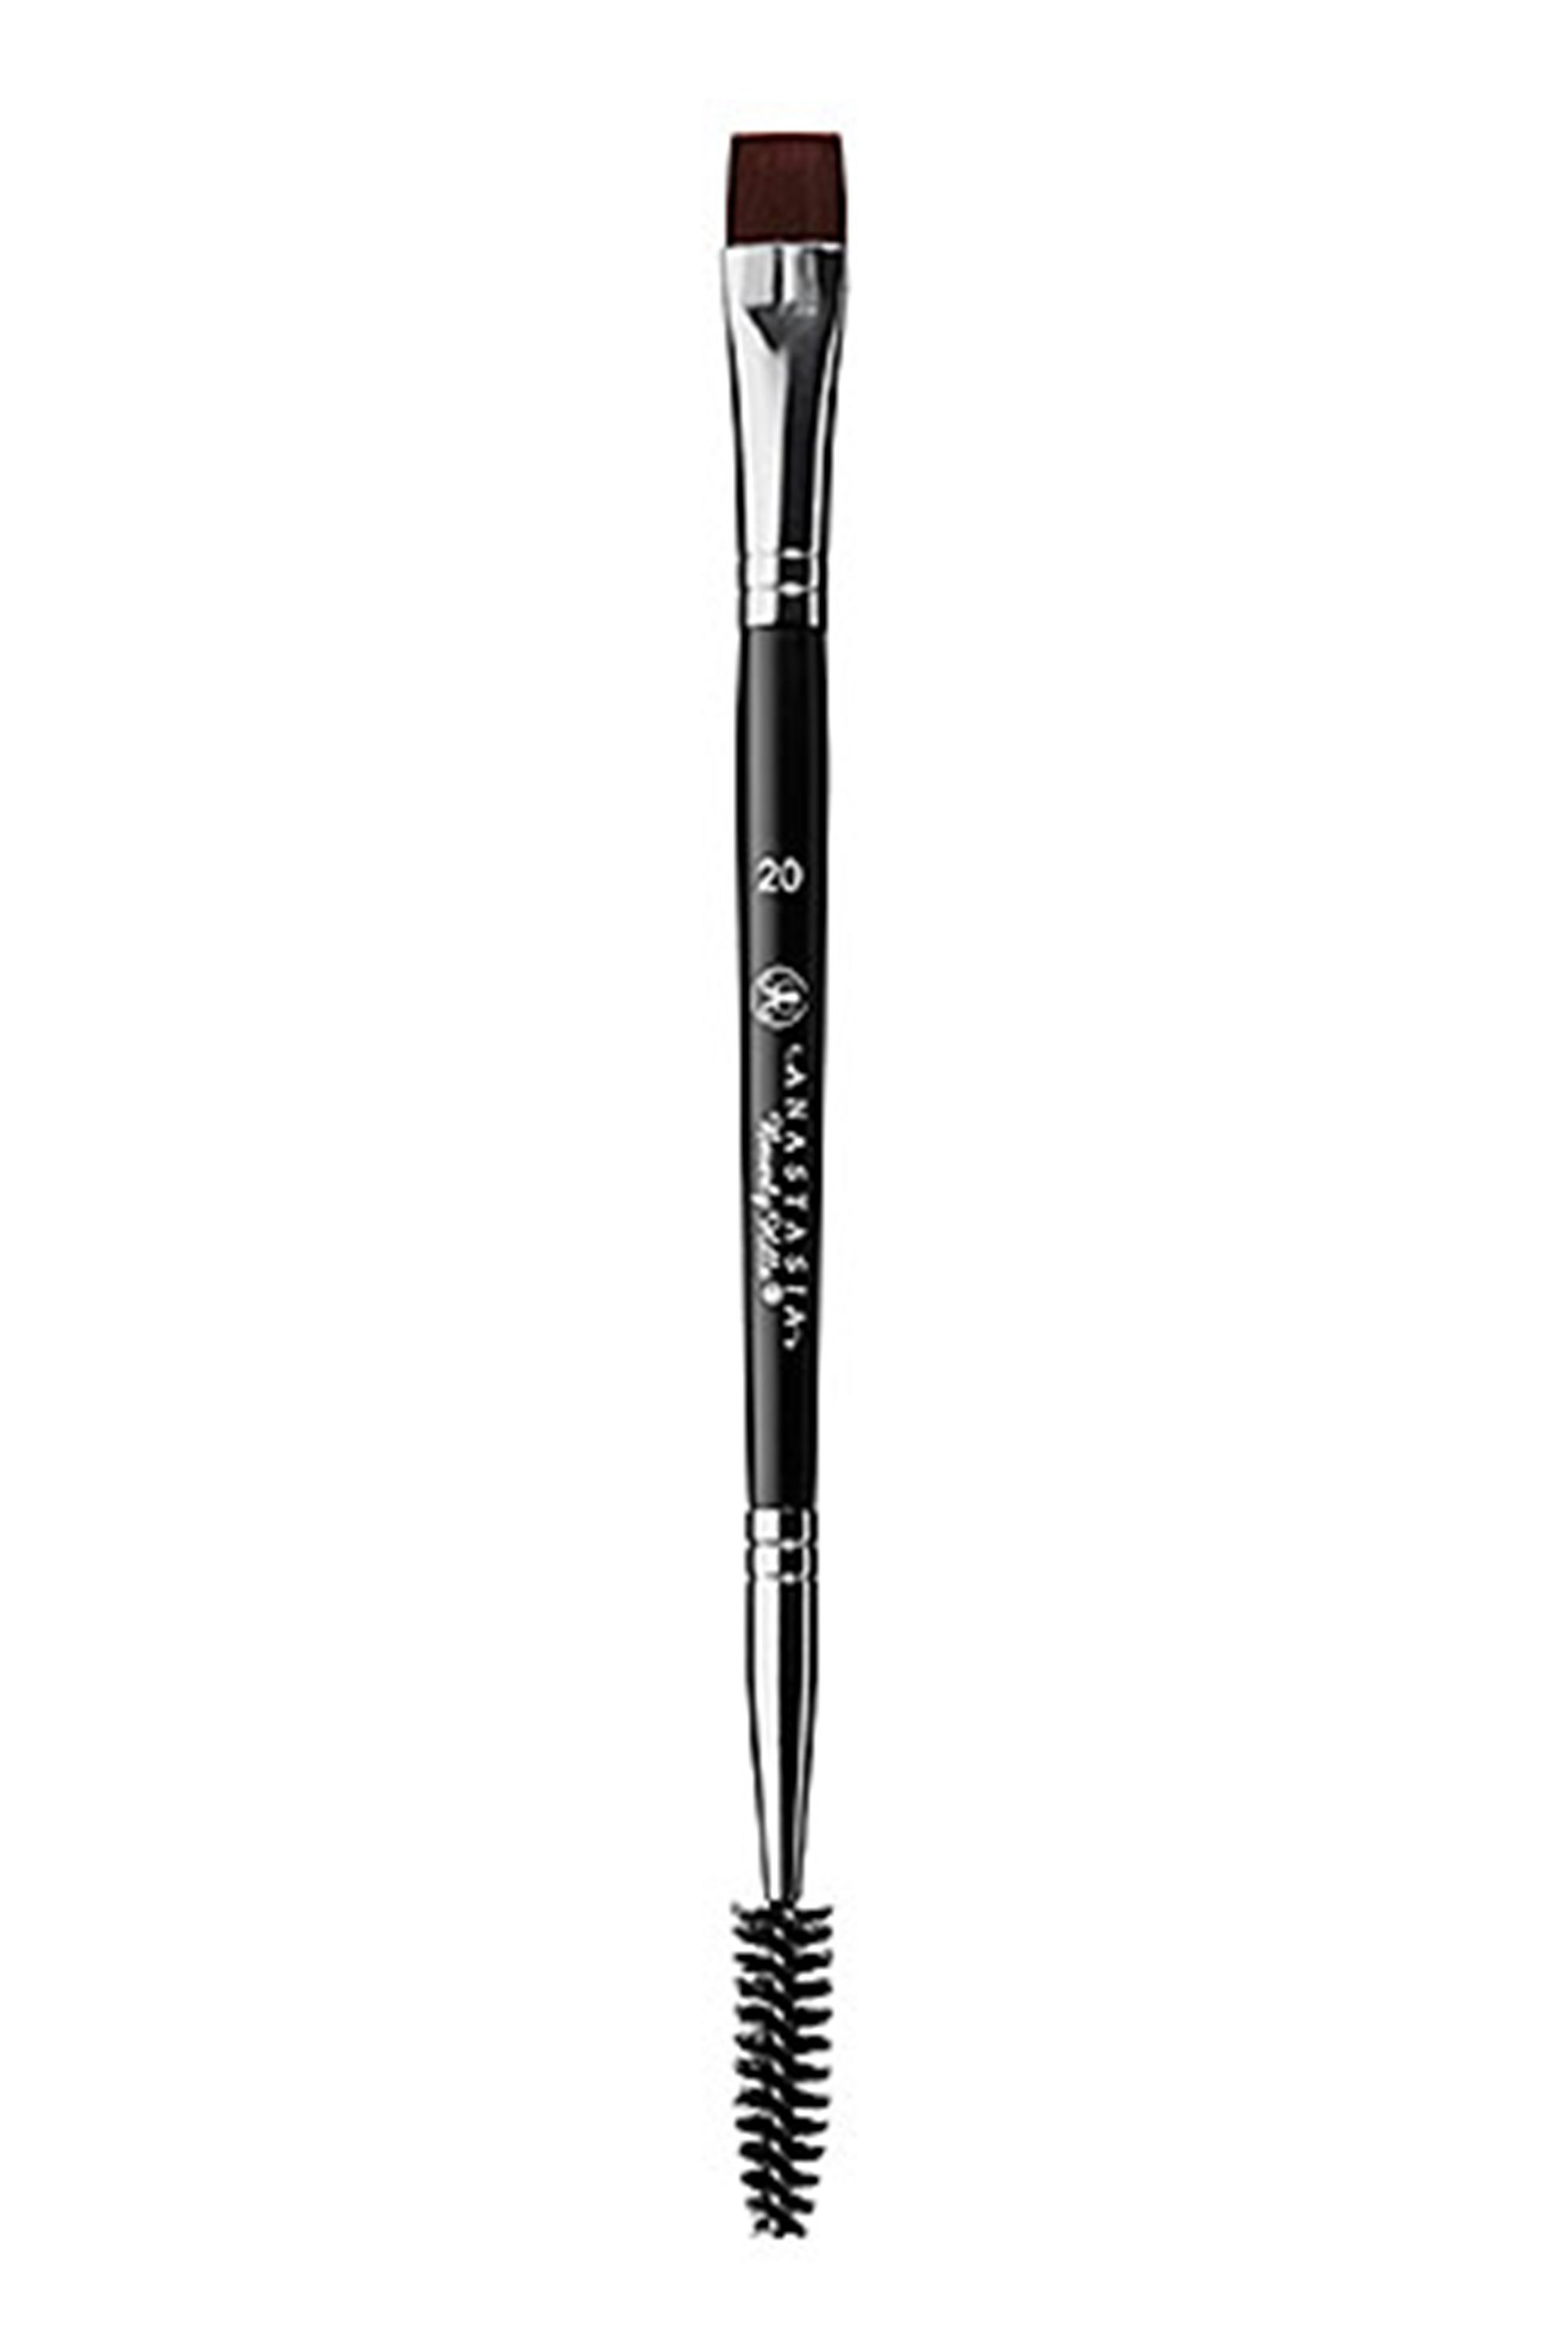 Anastasia Beverly Hills Brush #20 Anastasia Beverly Hills sephora.com $18.00 SHOP NOW The square-shaped brush allows you to create clean, defined edges, while the spoolie end blends product into your brow hair to create a natural look.